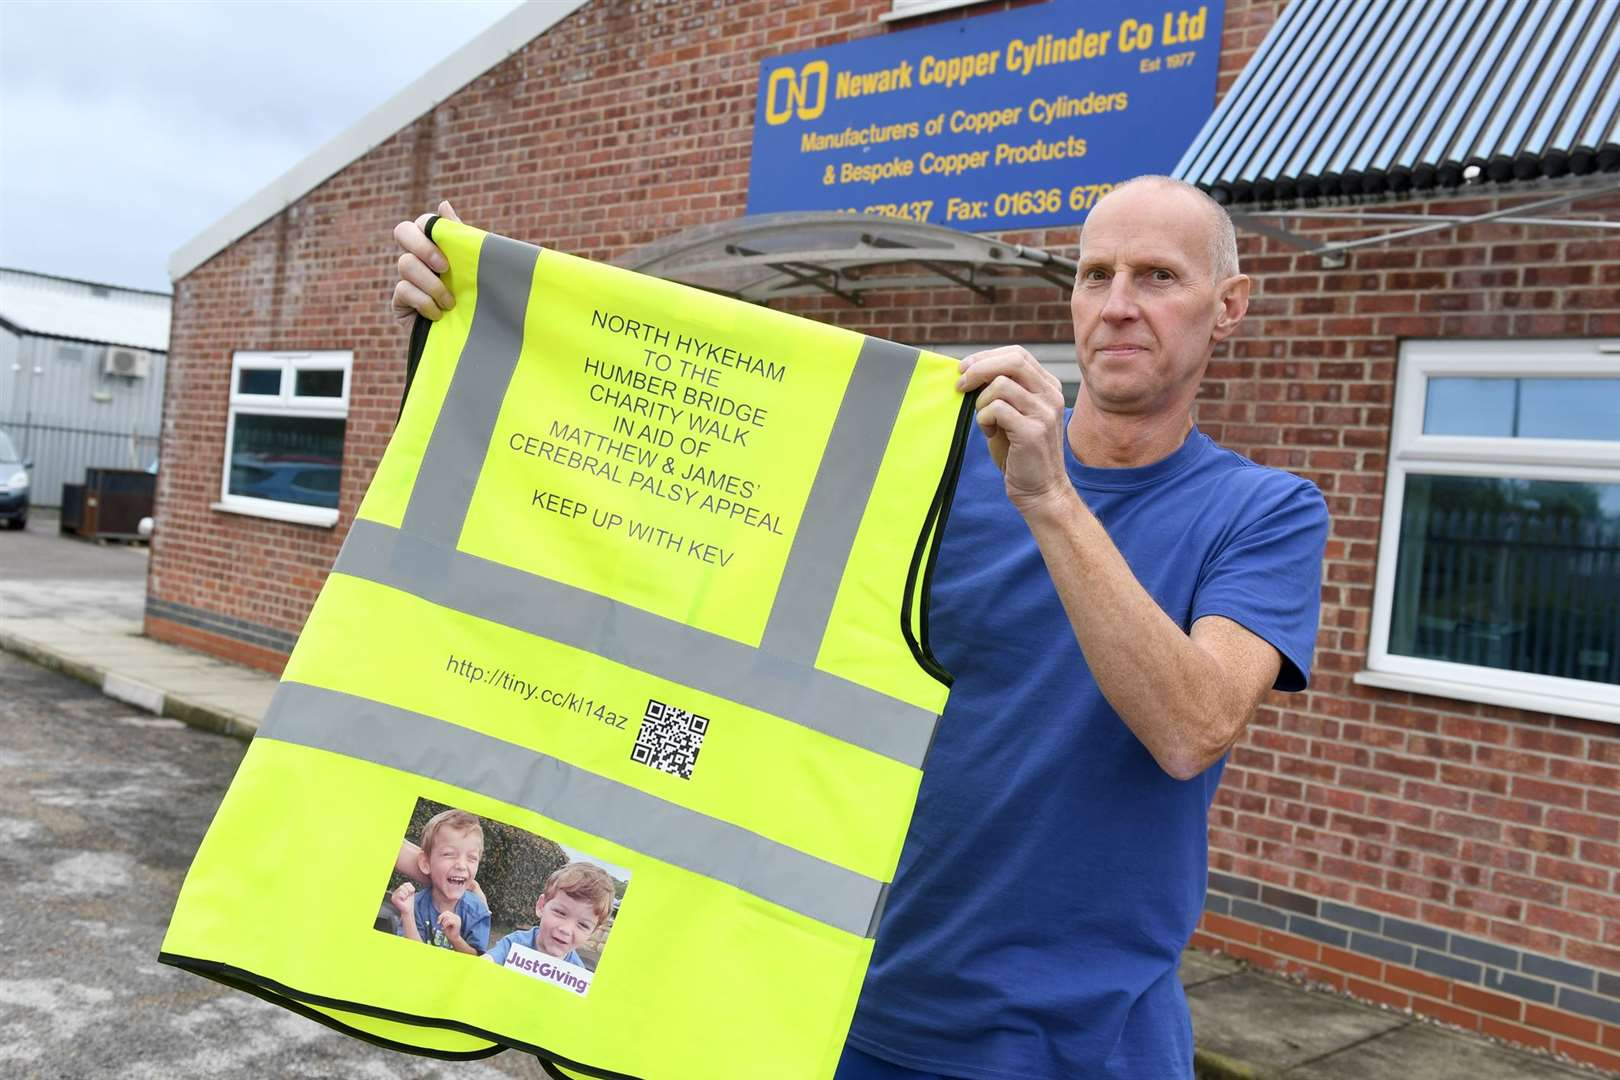 Kev Hempsall is walking from North Hykeham to the Humber Bridge in aid of twins with cerebral palsy 151019DD2-6.